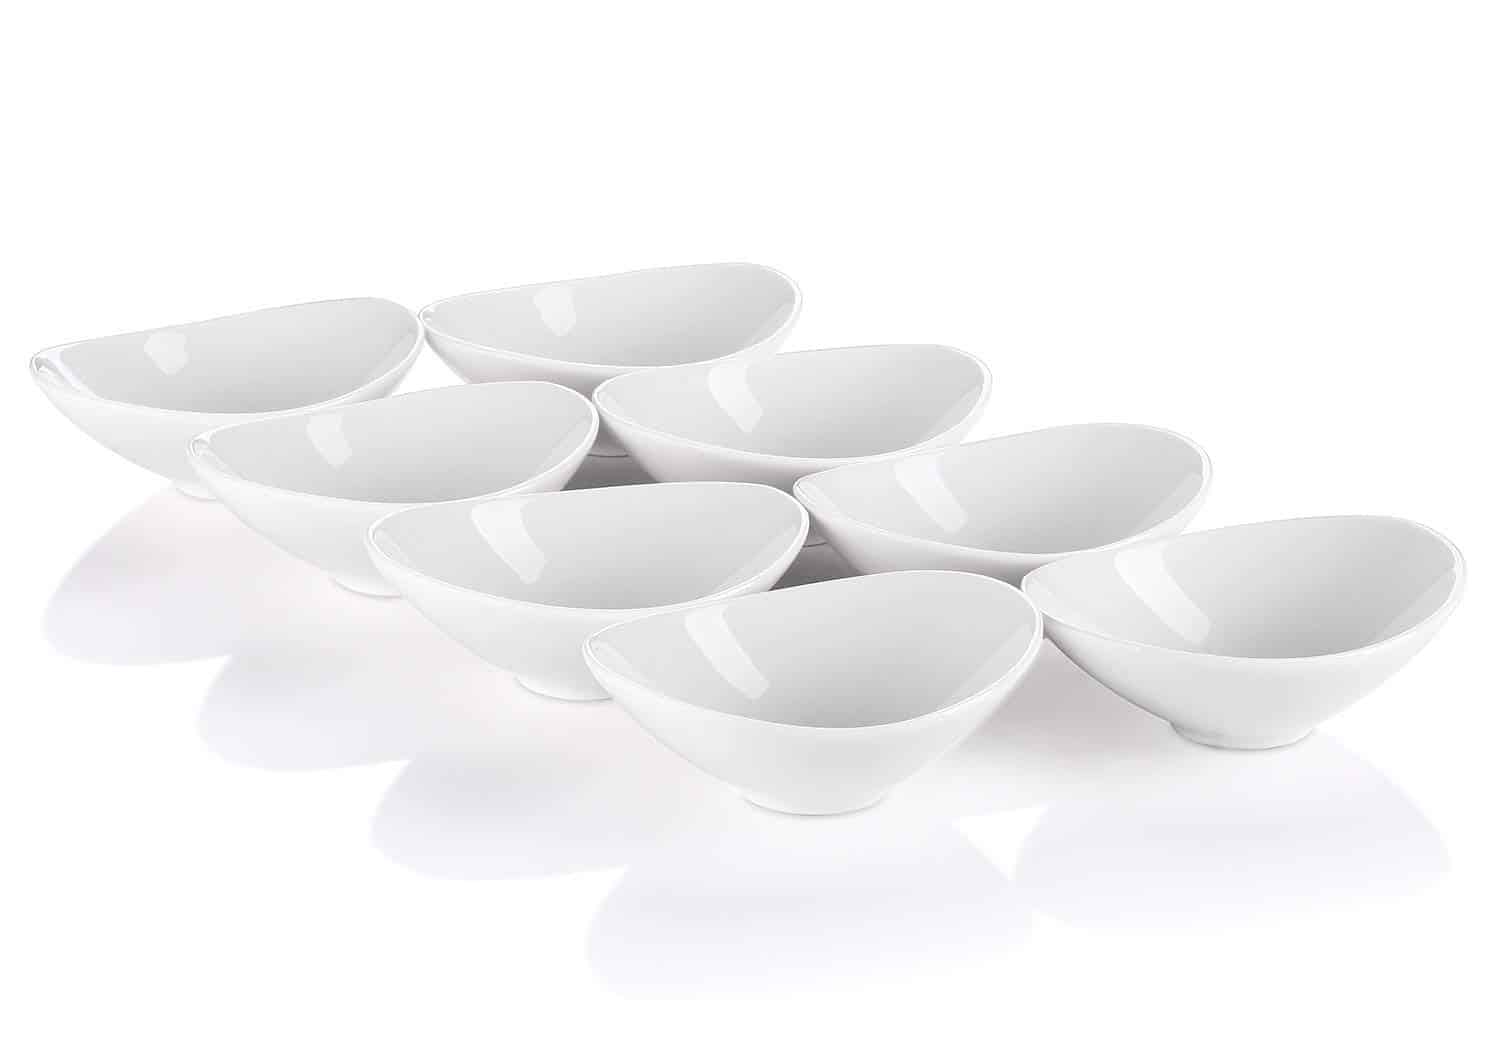 Lovely porcelain bowls perfect for individual dipping, such as ketchup for french fries, butter for dripping shrimp, or chutney and olive oil, etc and also used for serving little dishes, dessert, appetizer, soup, prepping recipes, condiments and so on.